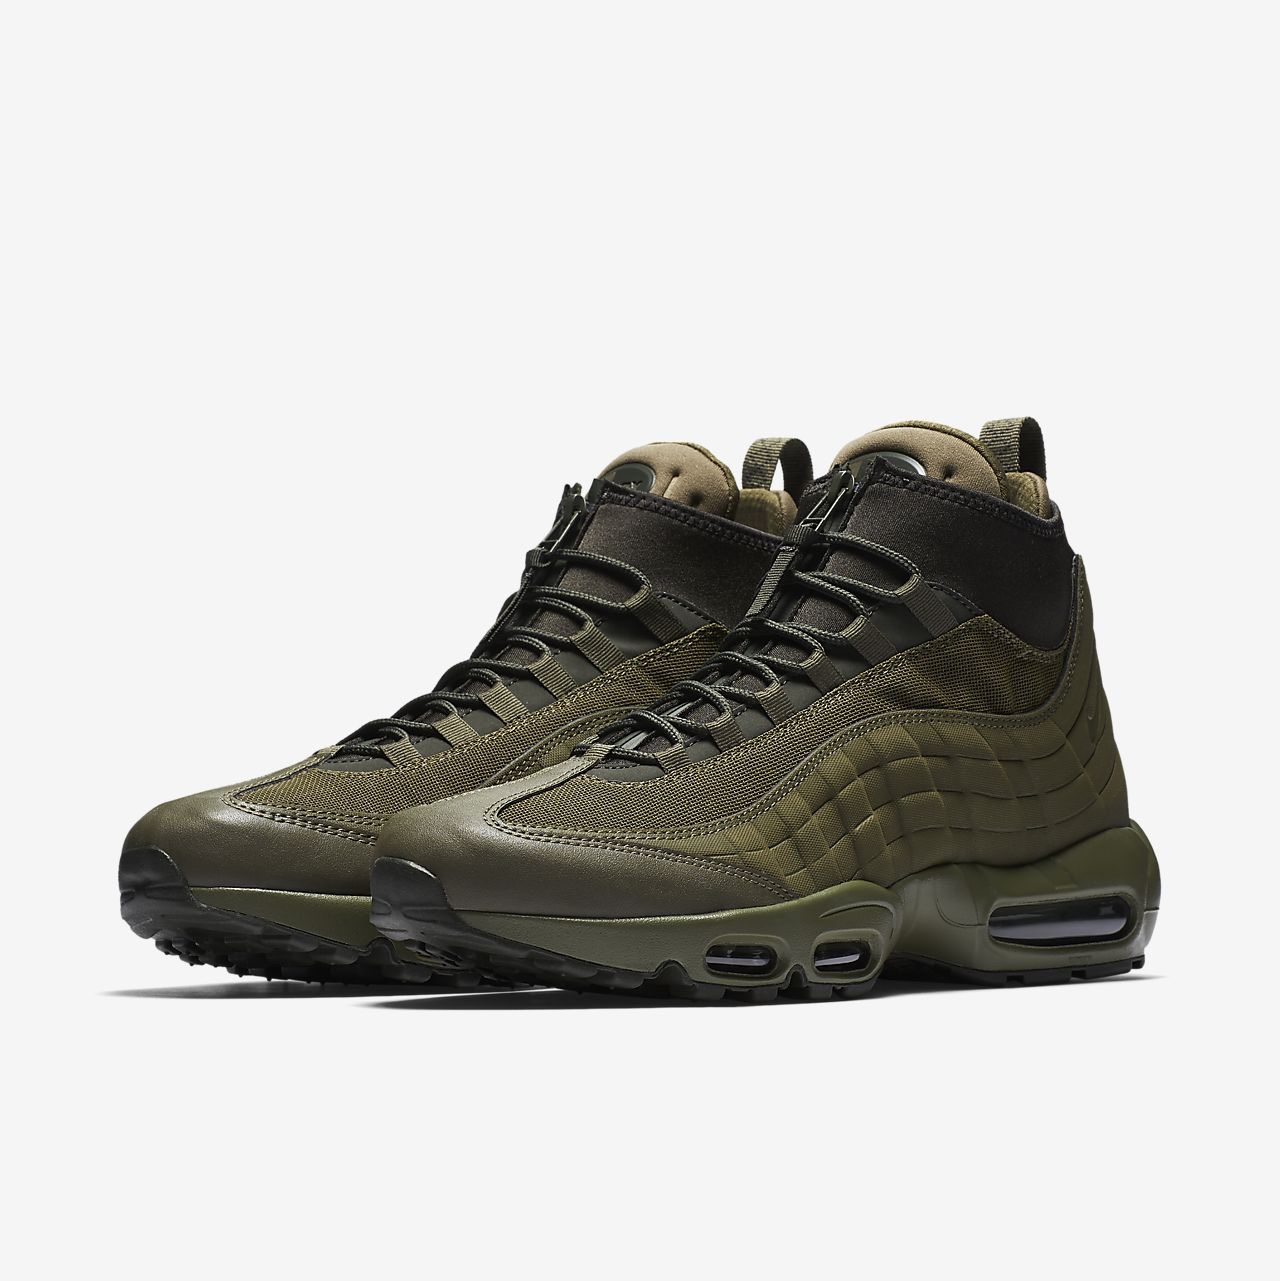 innovative design c385b cec73 Nike Air Max 95 Sneakerboot Green/Olive New. Fresh... - Depop